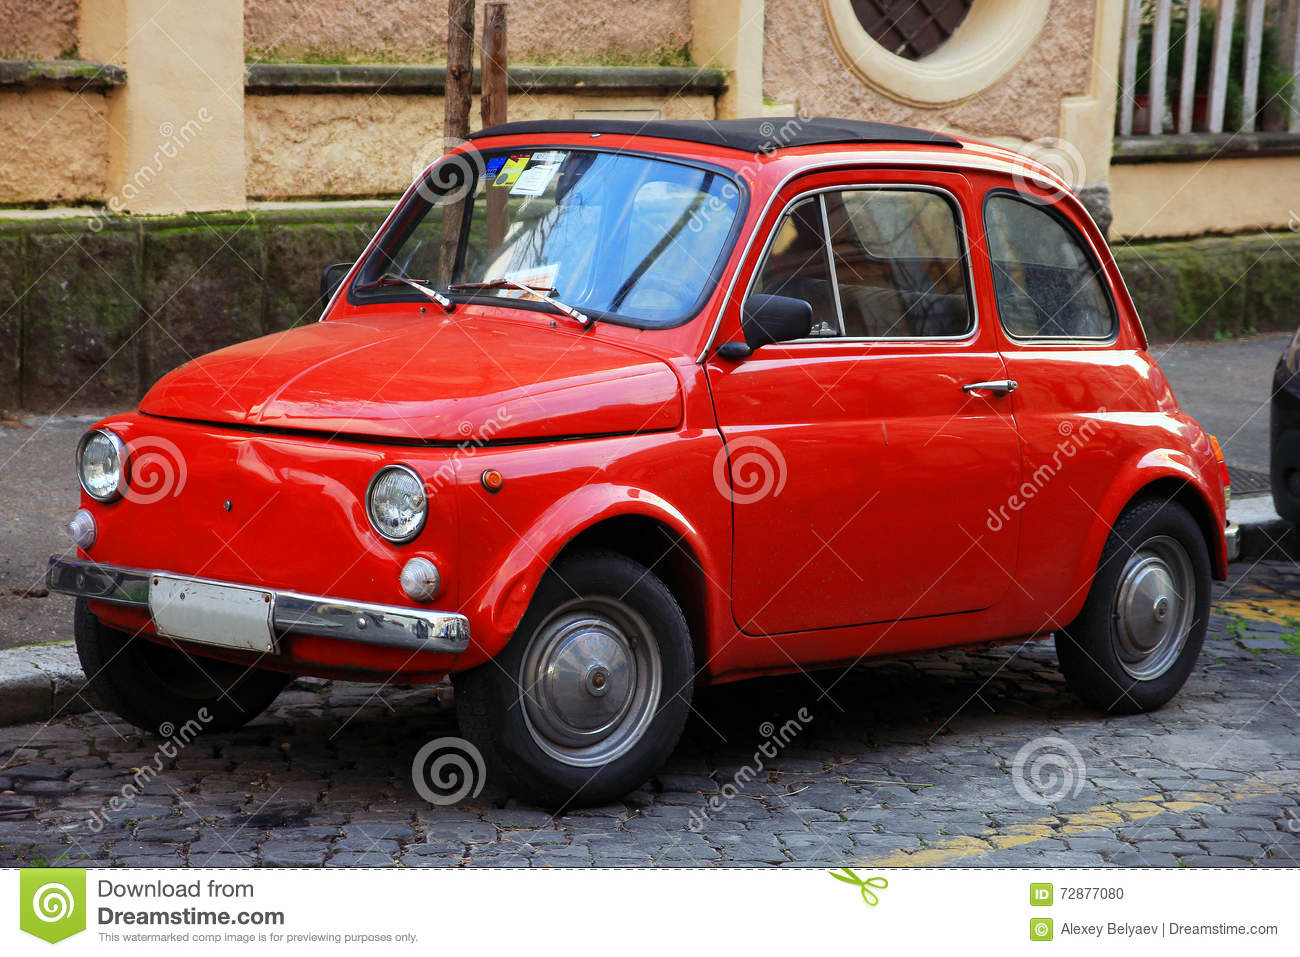 Funny Red Small Old Little Italian Car With Round Headlights And